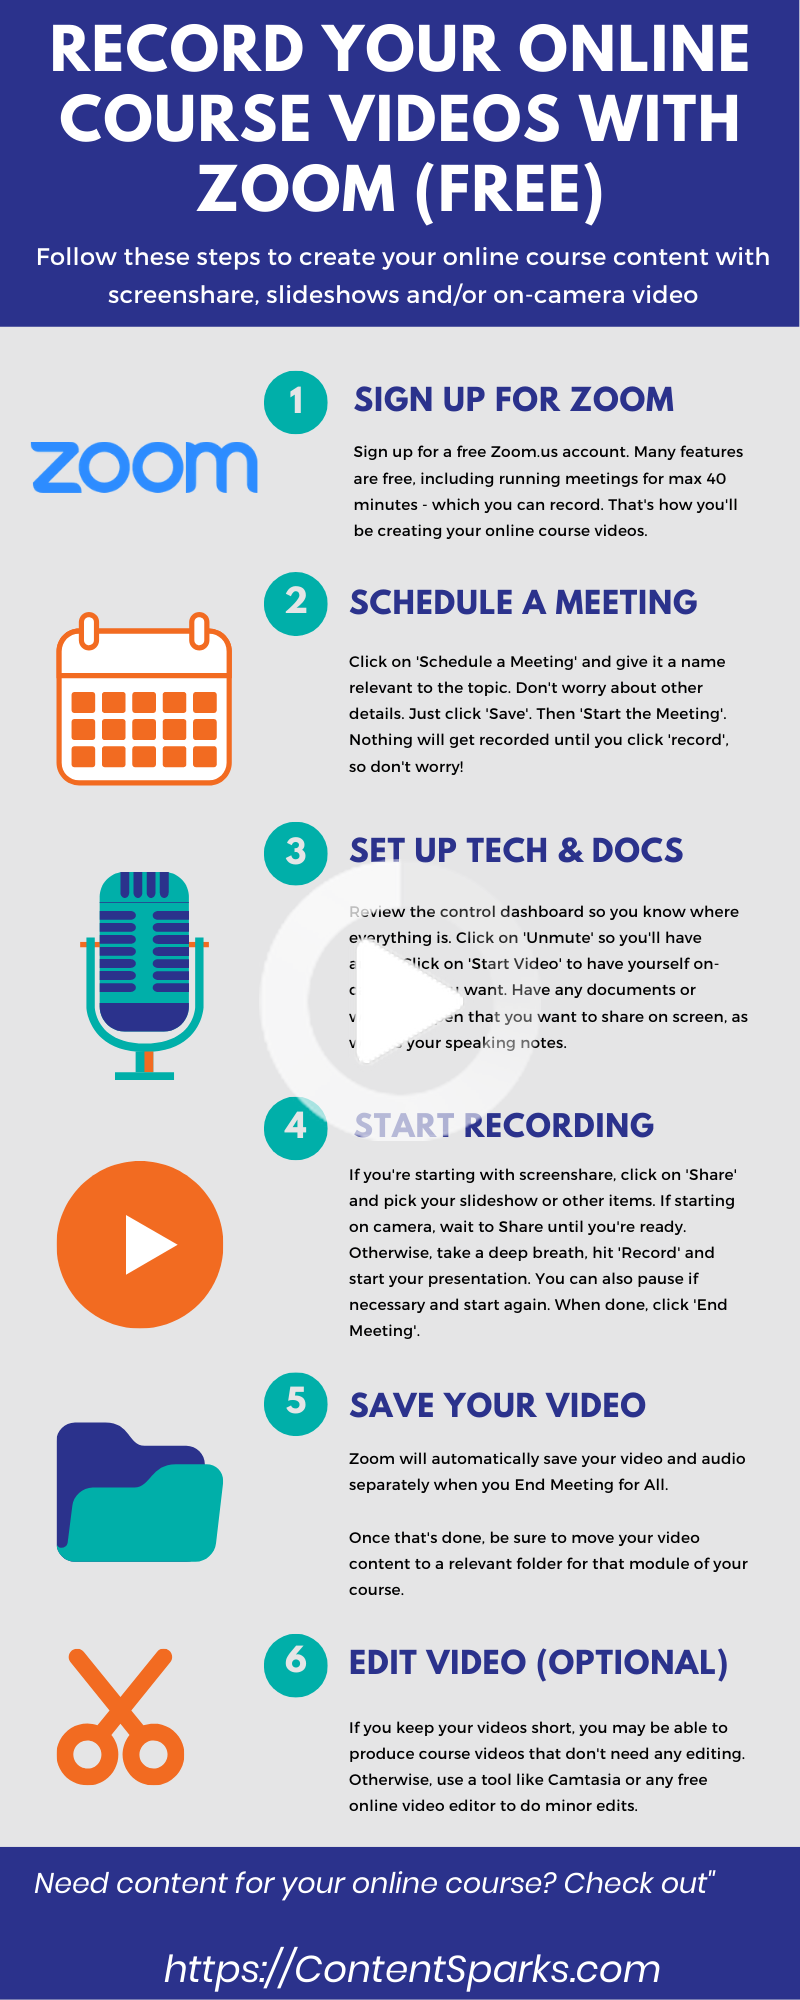 How To Record Your Online Course Videos With Zoom For Free Online Teaching Online Courses Teacher Tech